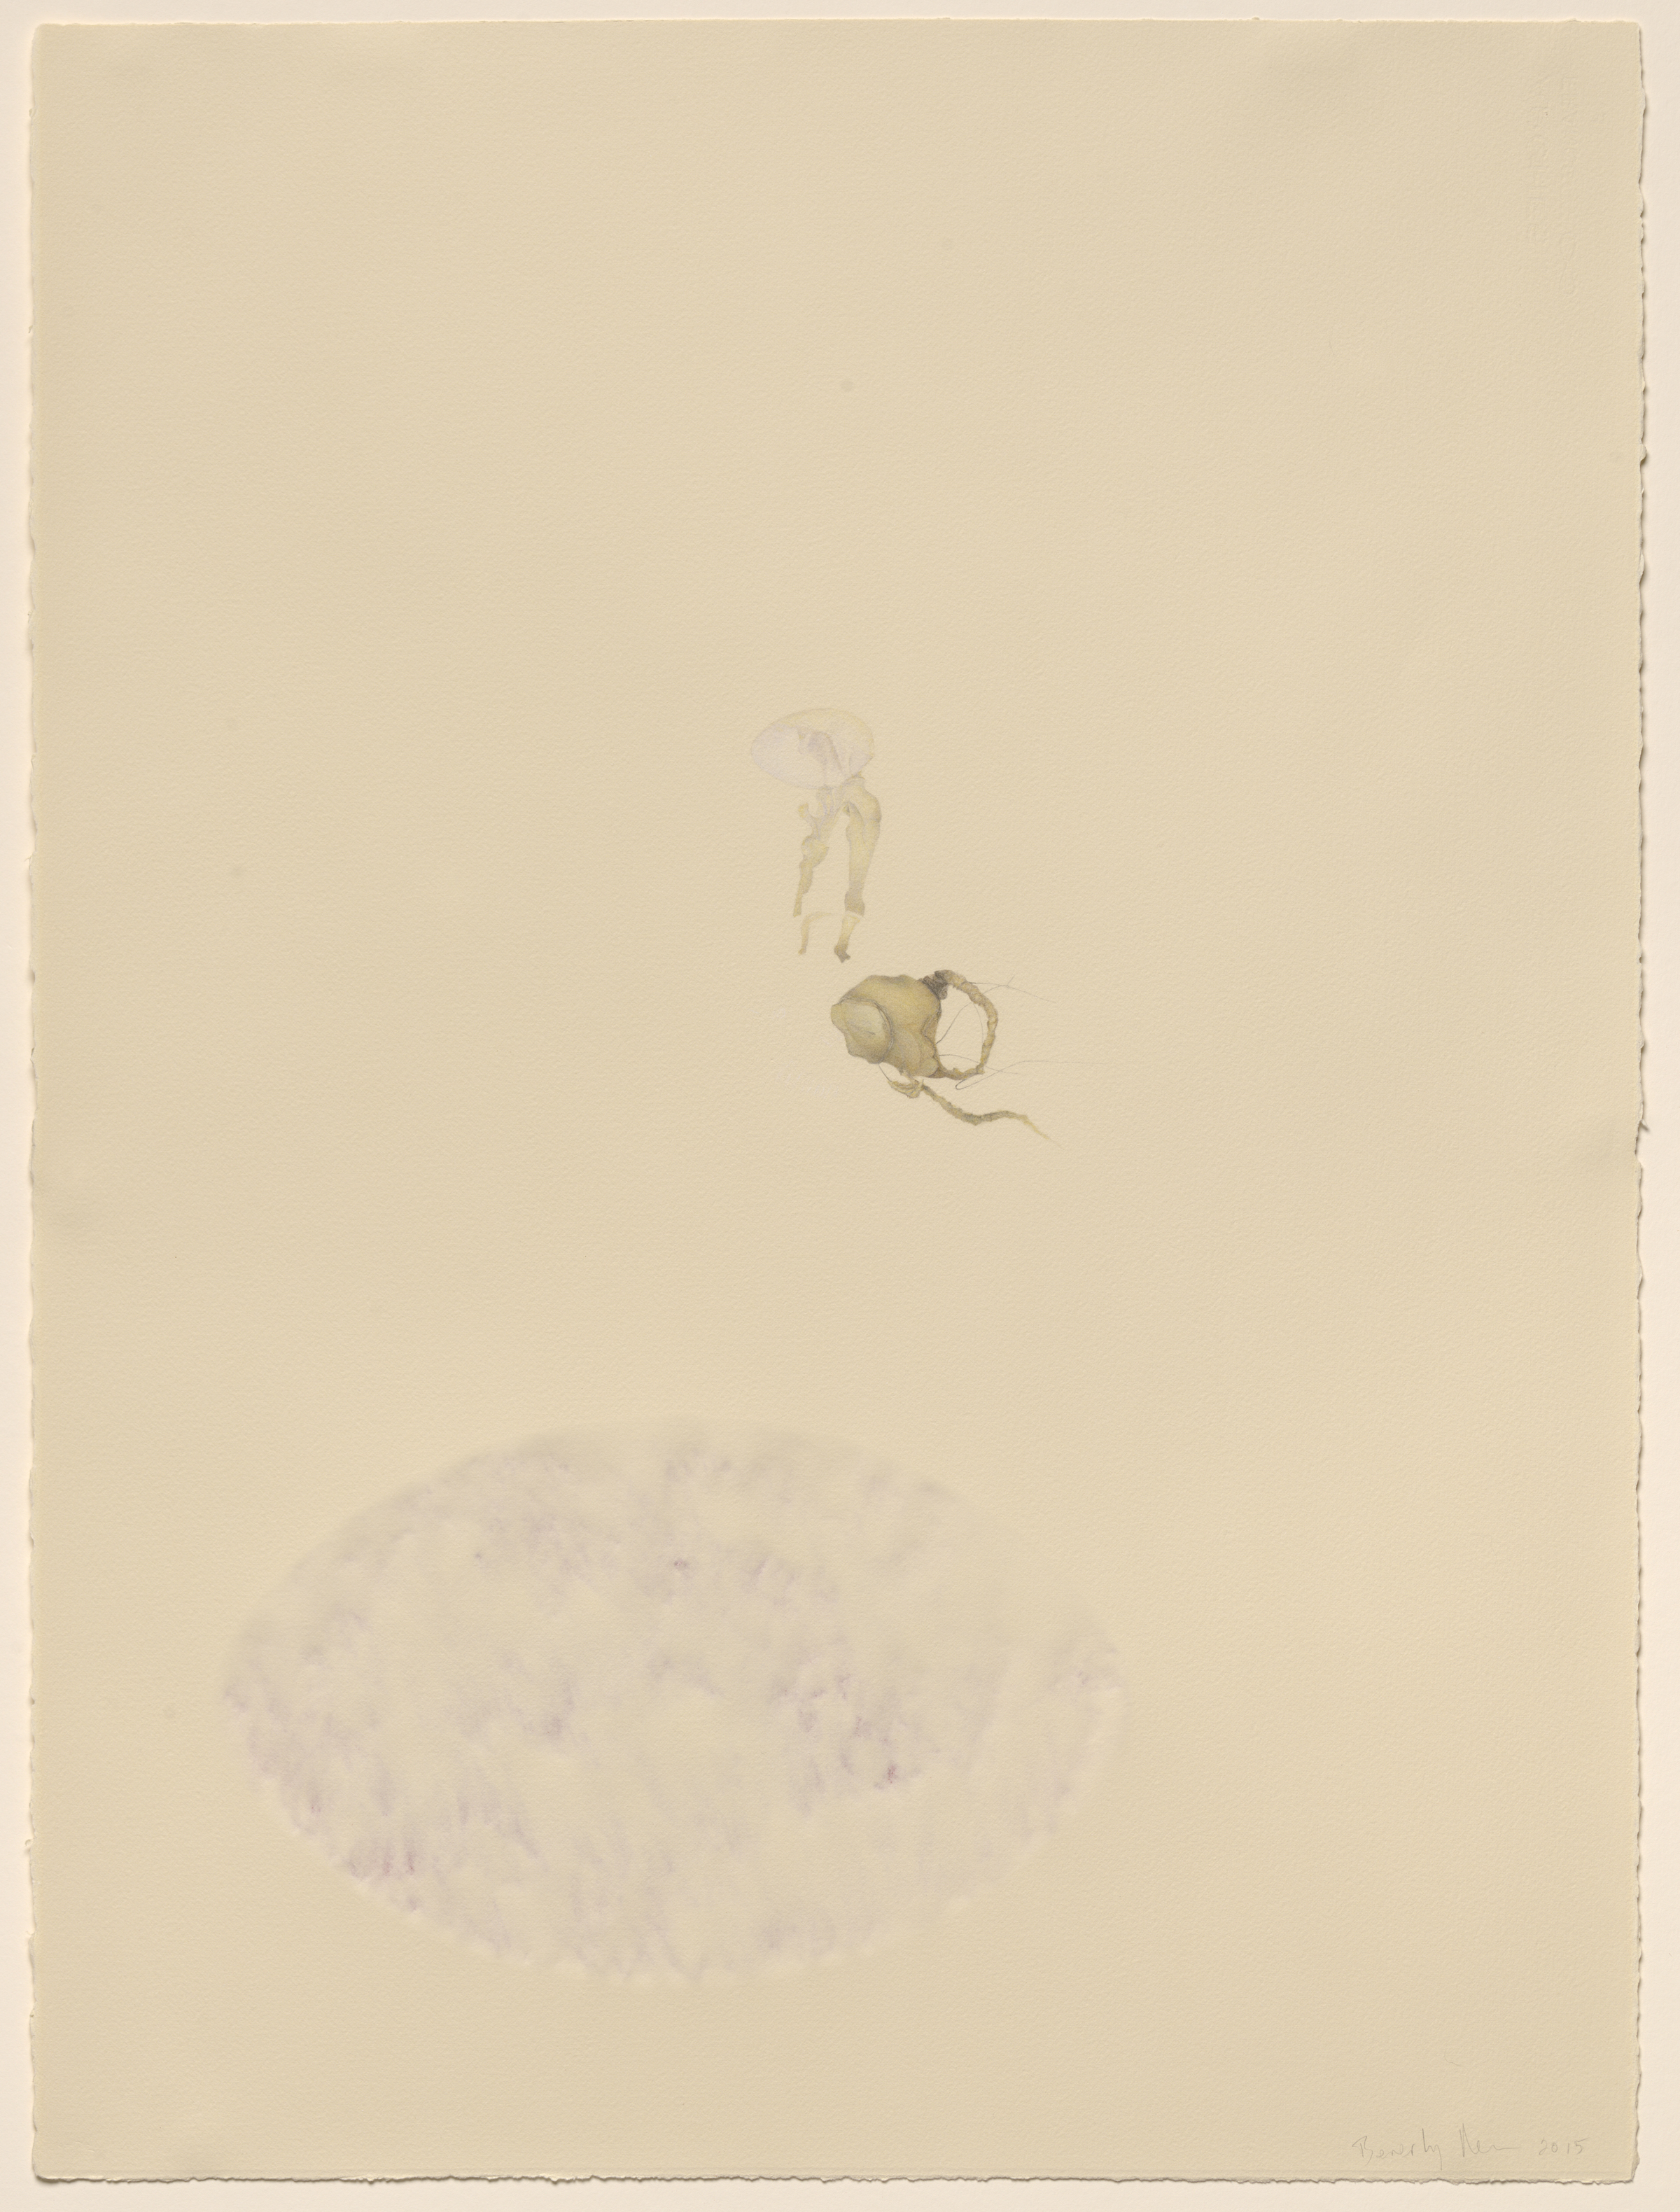 Representational drawing of a small heart and an amniotic sac, centered, on Arches paper, scraped away on back, pigment added